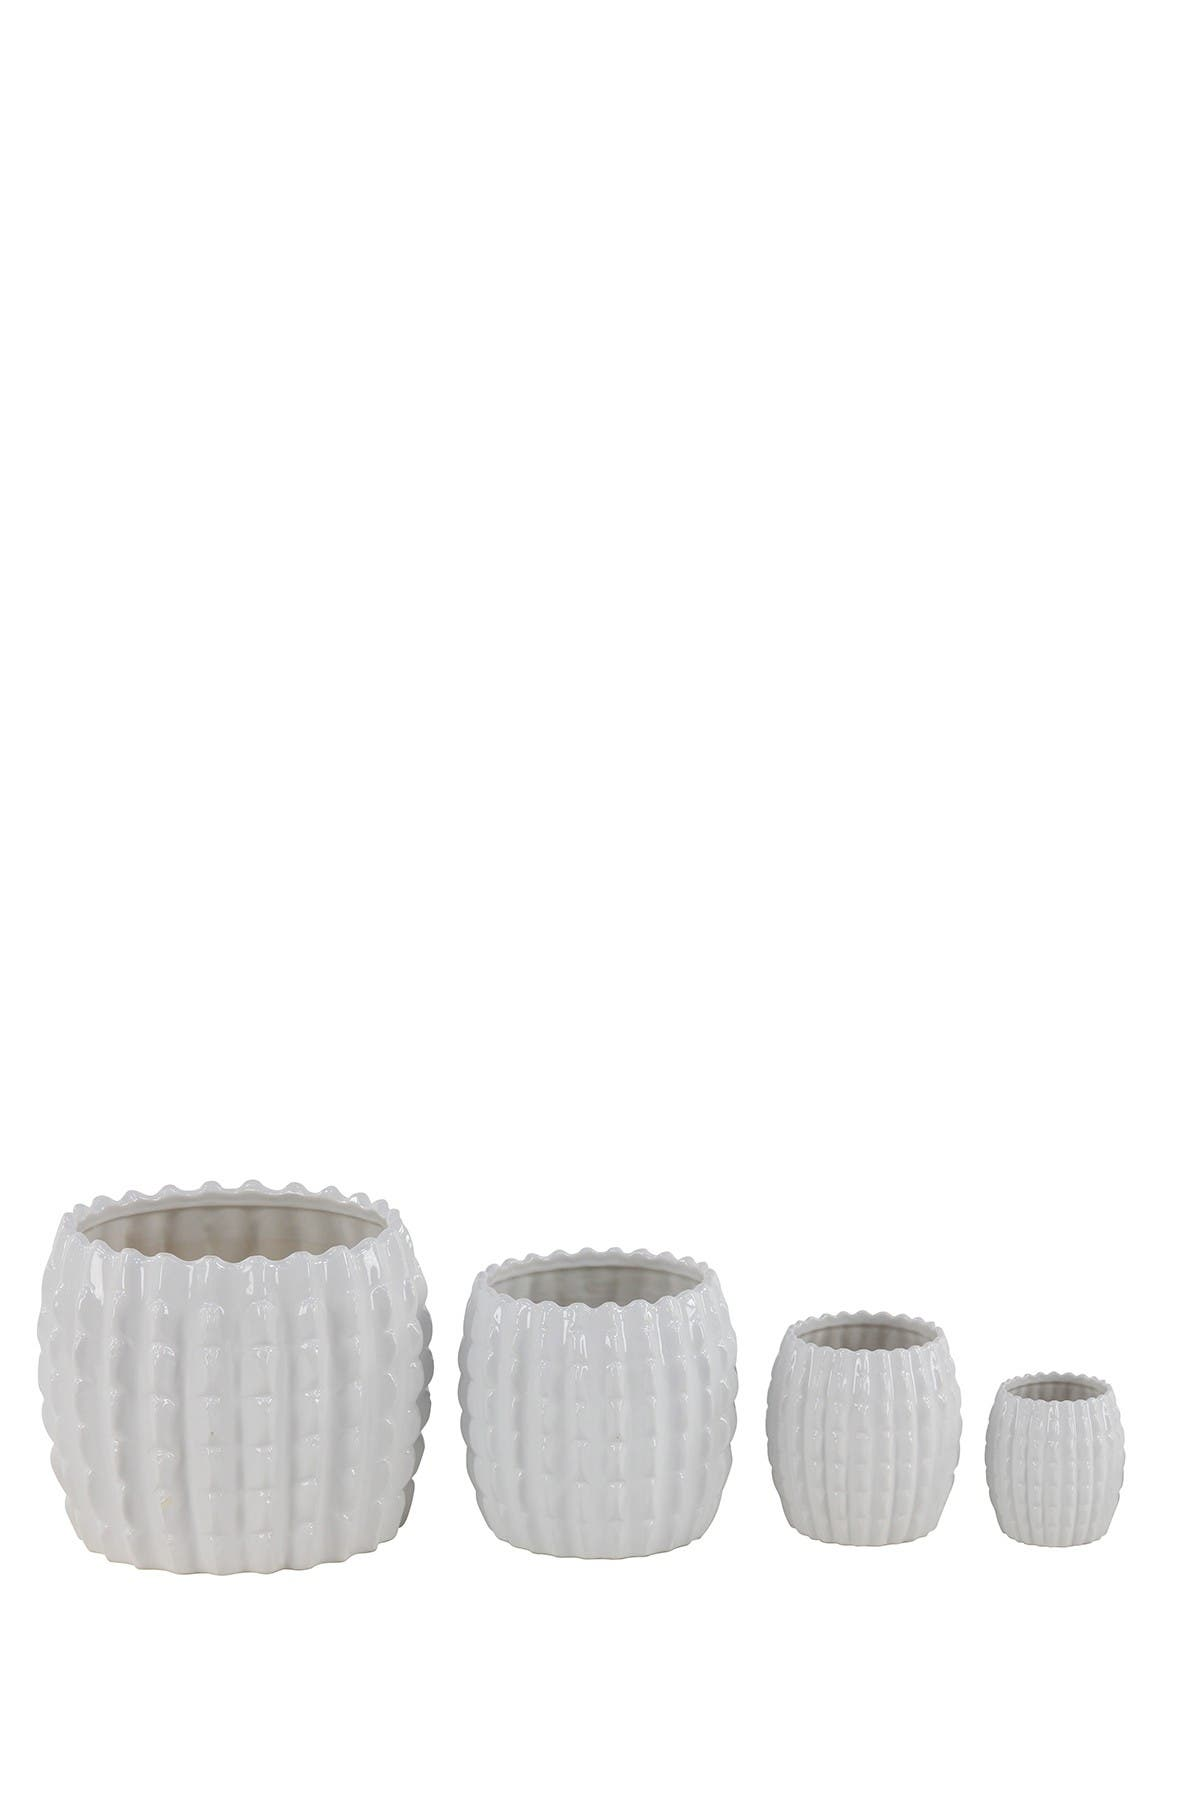 Image of Willow Row Eclectic White Ceramic Planters - Set of 4